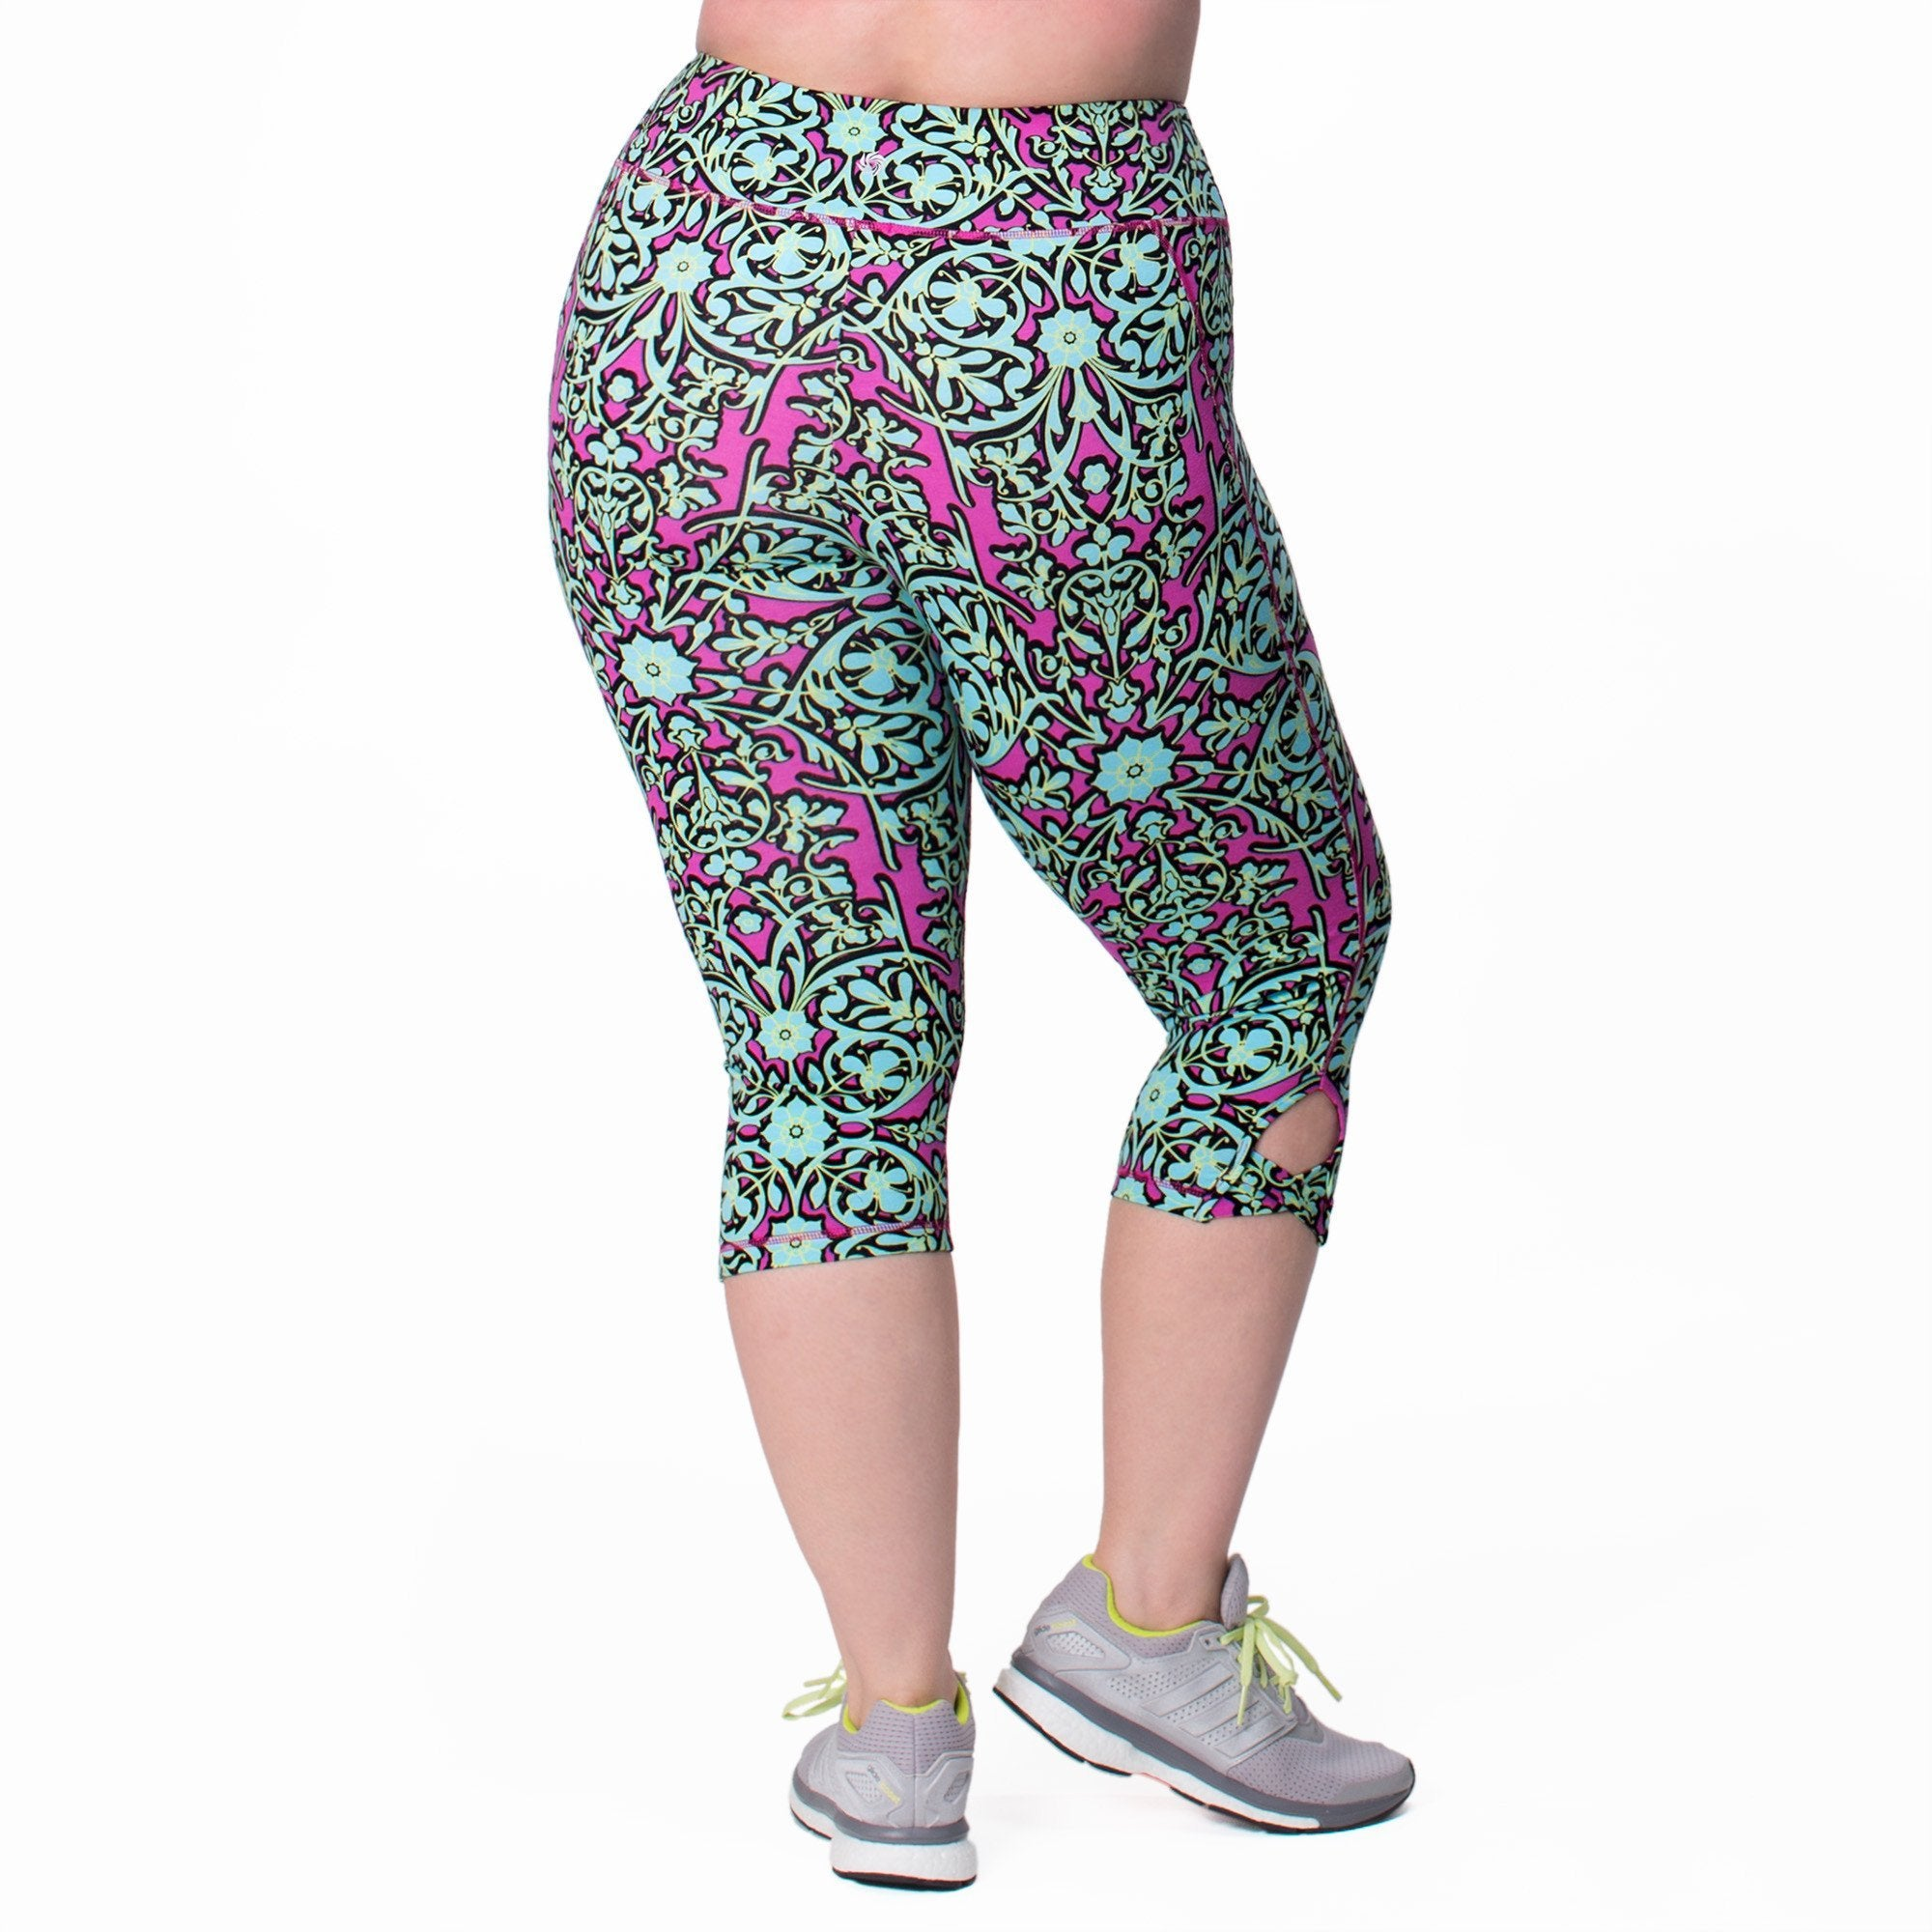 Lilia Print Capri - Rainbeau Curves, 18/20 / Multi Floral Trellis, activewear, athleisure, fitness, workout, gym, performance, womens, ladies, plus size, curvy, full figured, spandex, cotton, polyester - 3